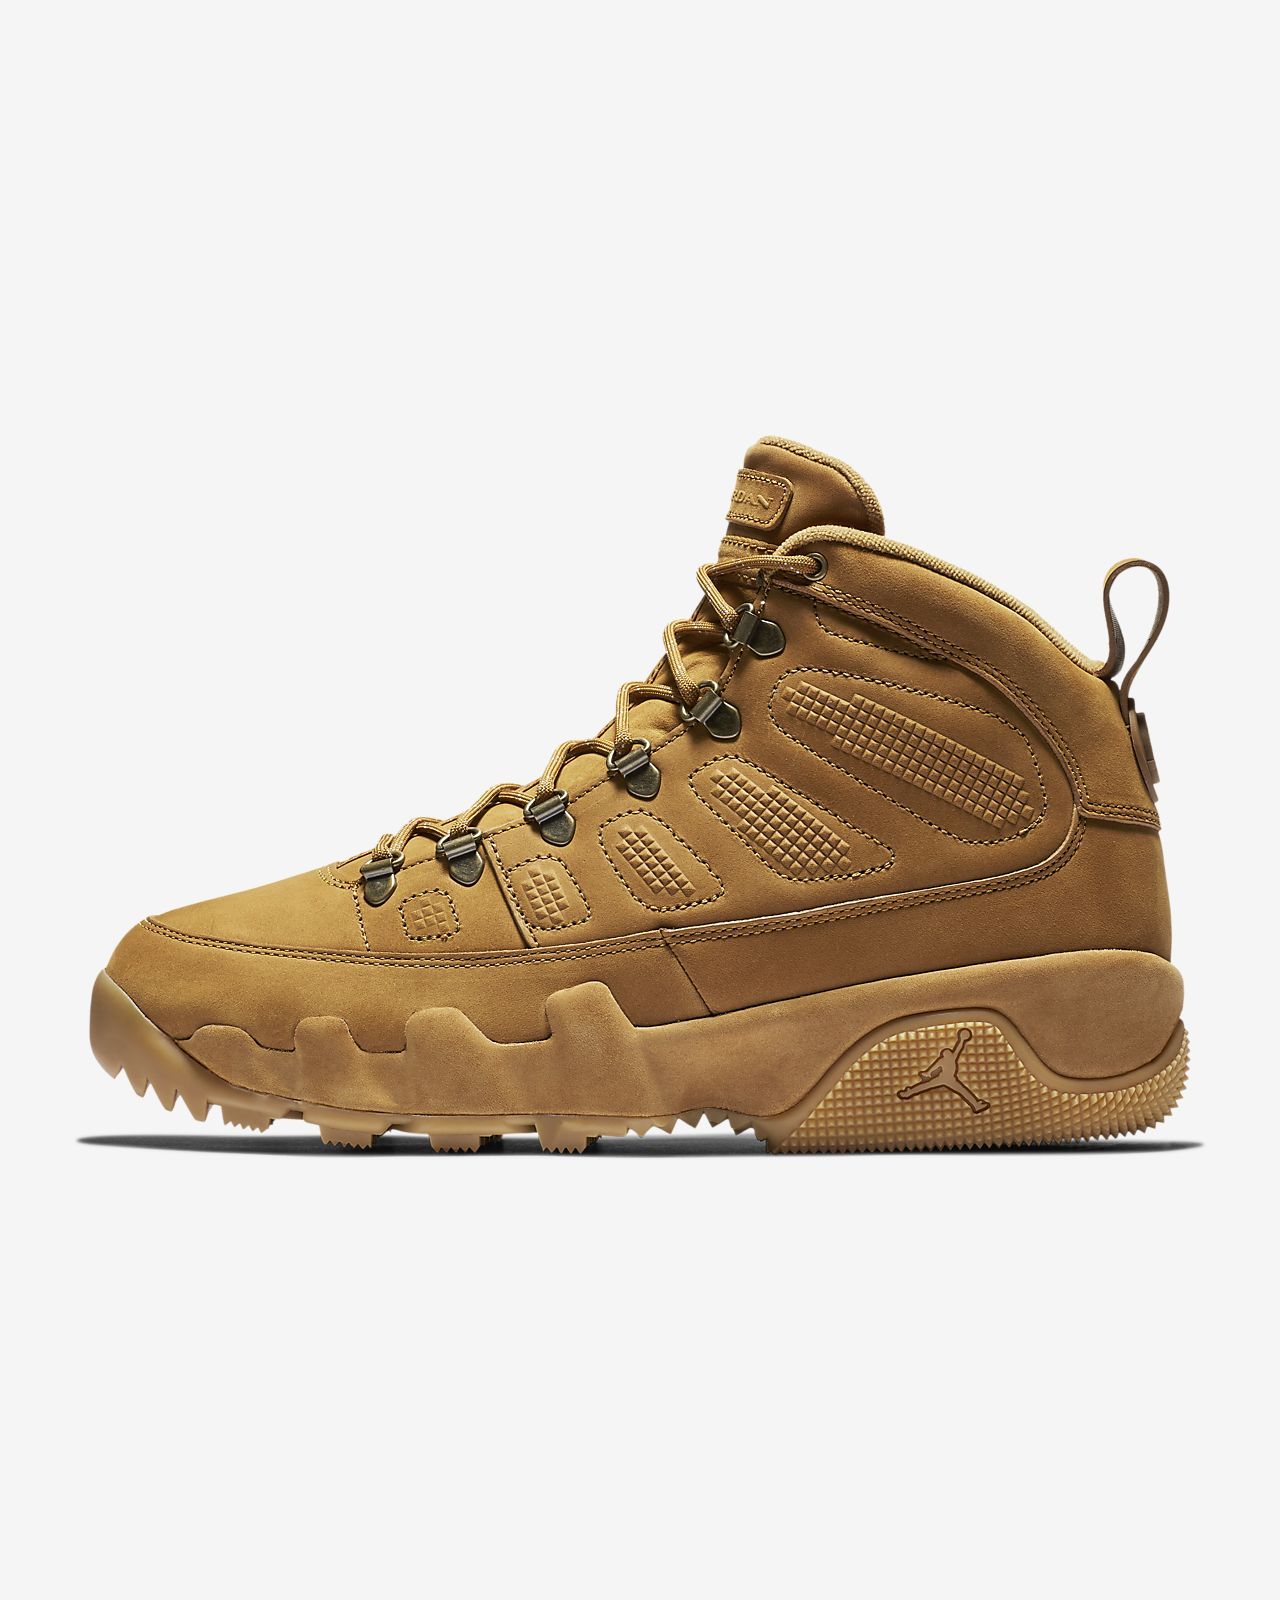 79be8ce7eb7 Air Jordan 9 Retro NRG Men s Boot. Nike.com